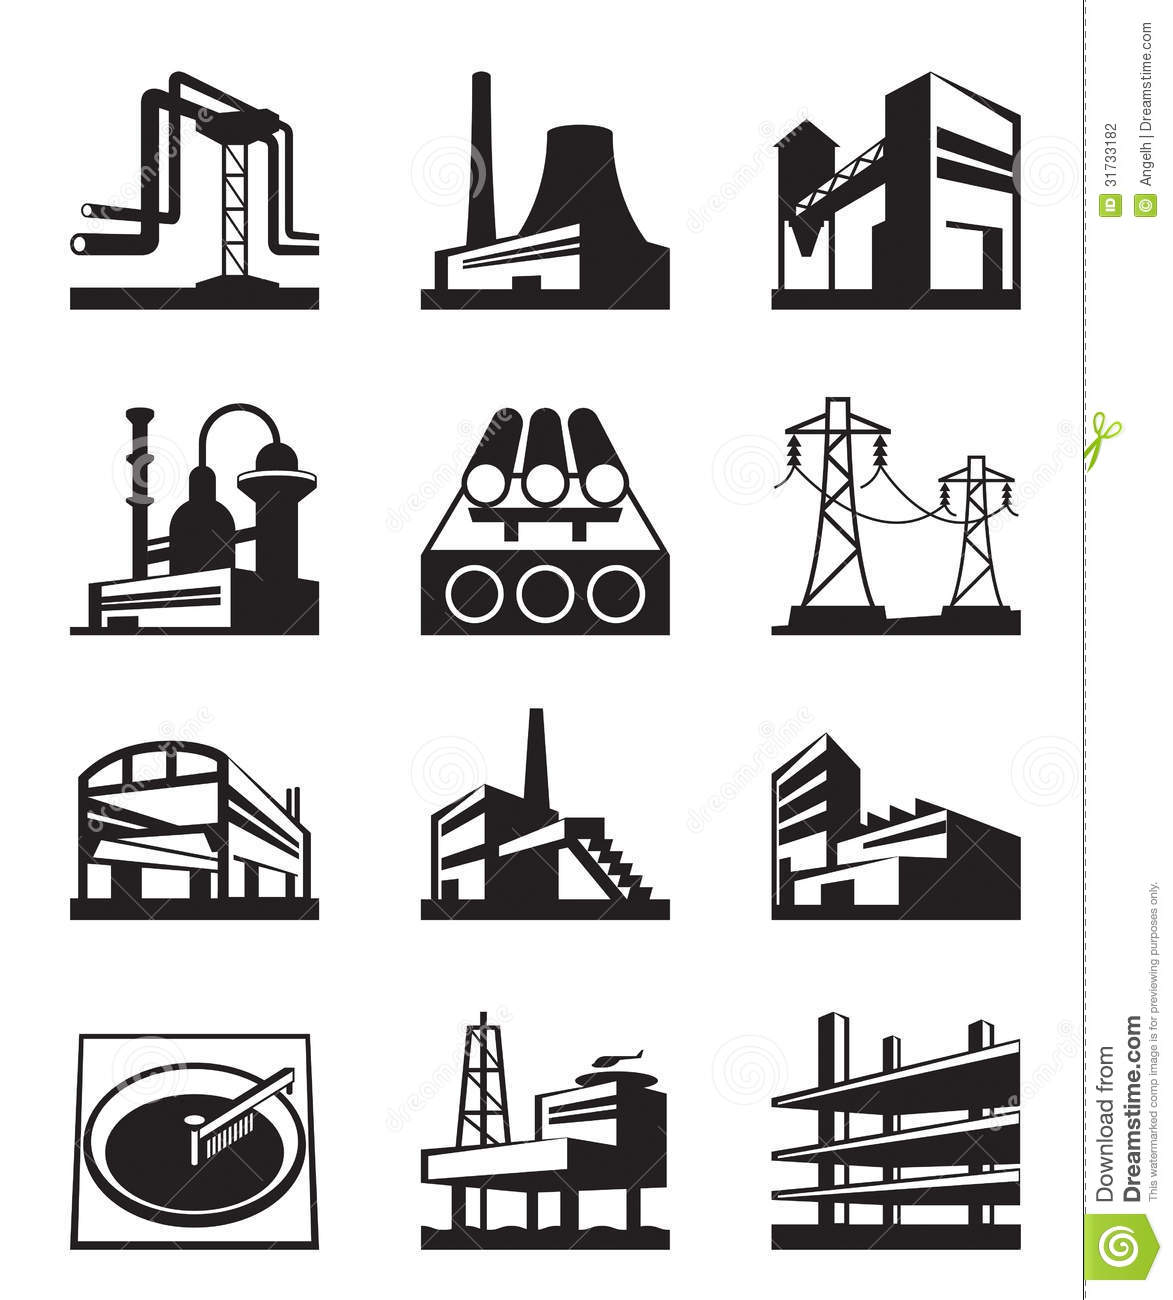 I Beam Series likewise Series SQ Frames together with Certifications Associations moreover Industrial Building Icon additionally Stock Illustration Steel Frame Building Project Scheme Isolated White Illustration Image43543780. on factory construction